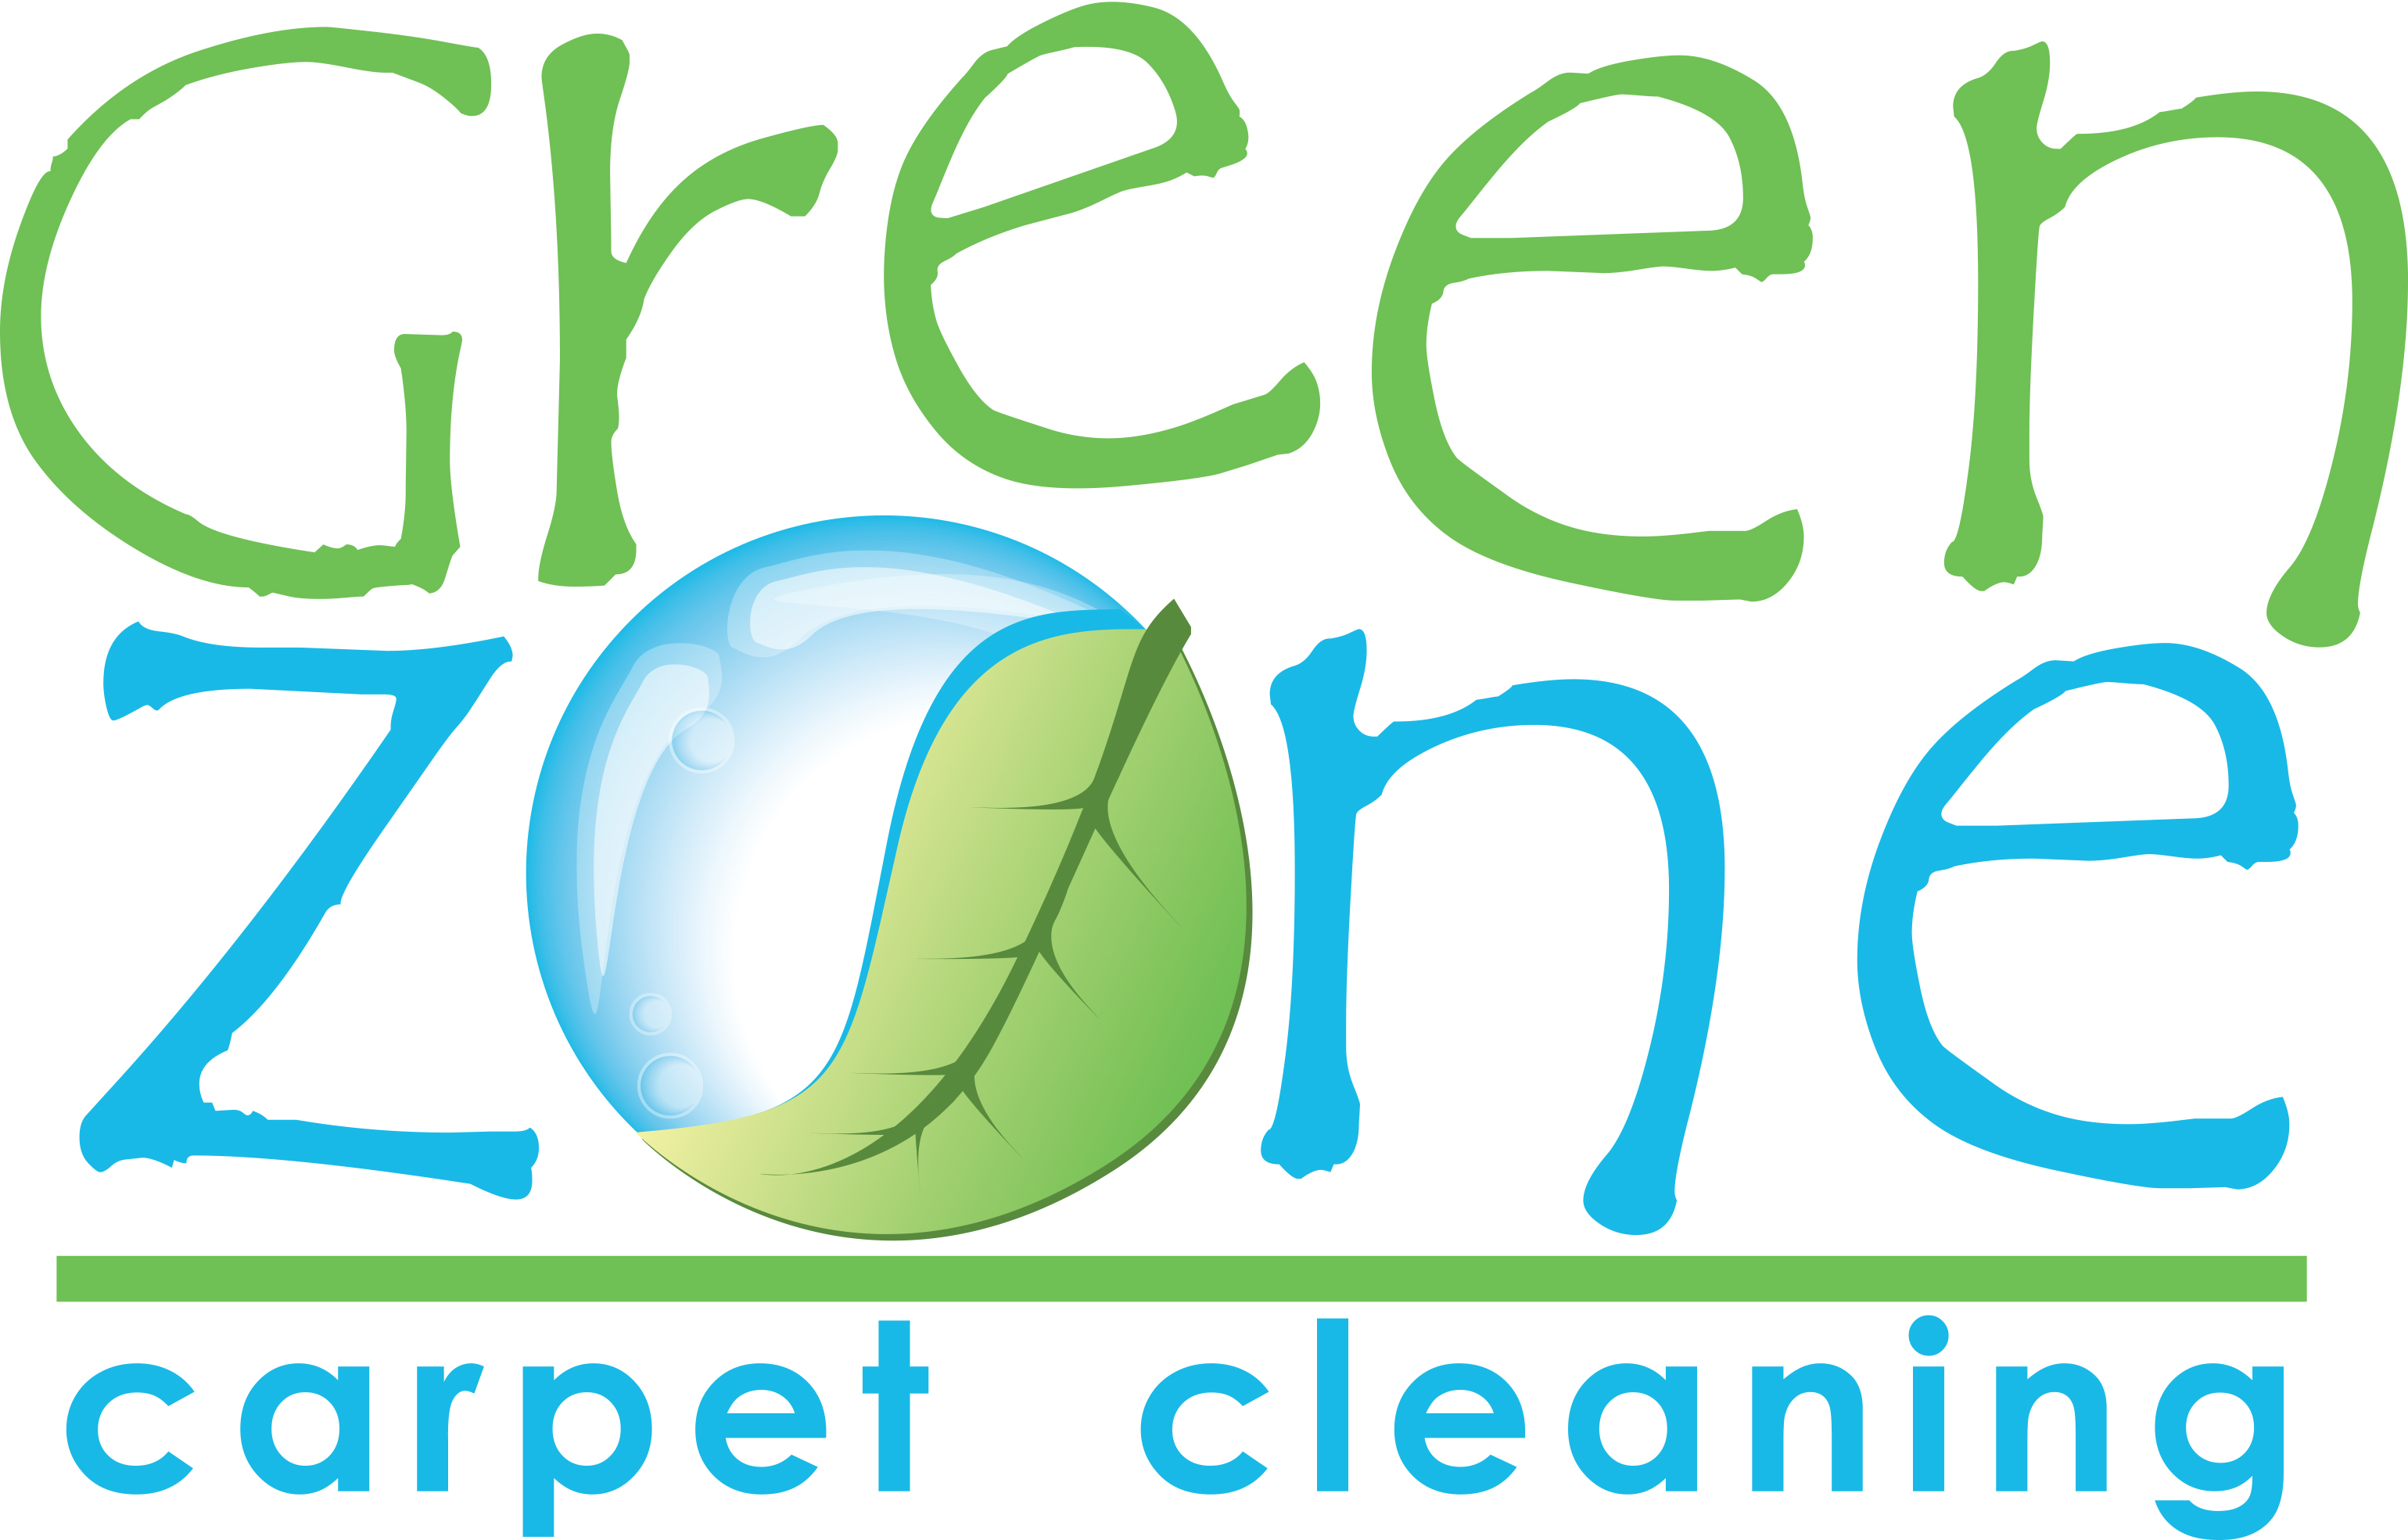 19 Area Rug Cleaning Green Zone Full Logo